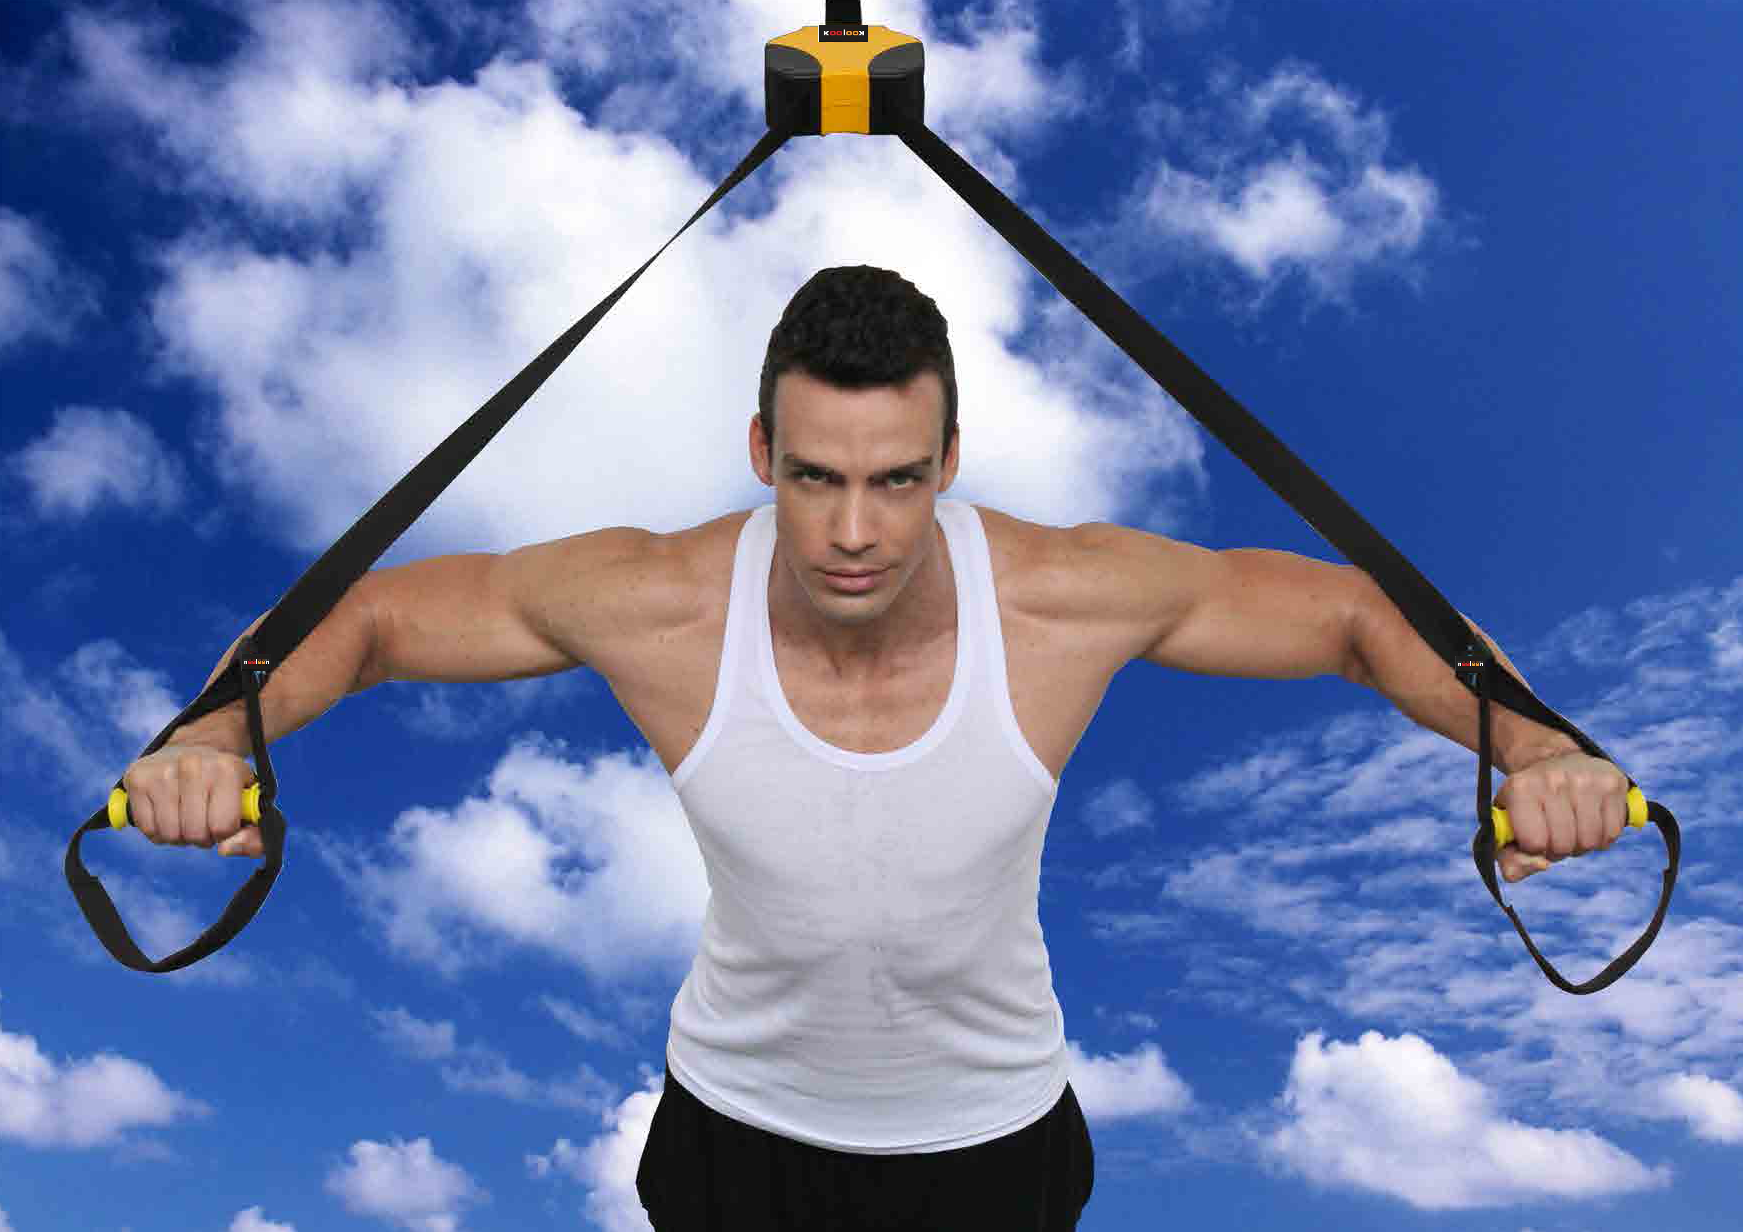 kast trx suspension trainer